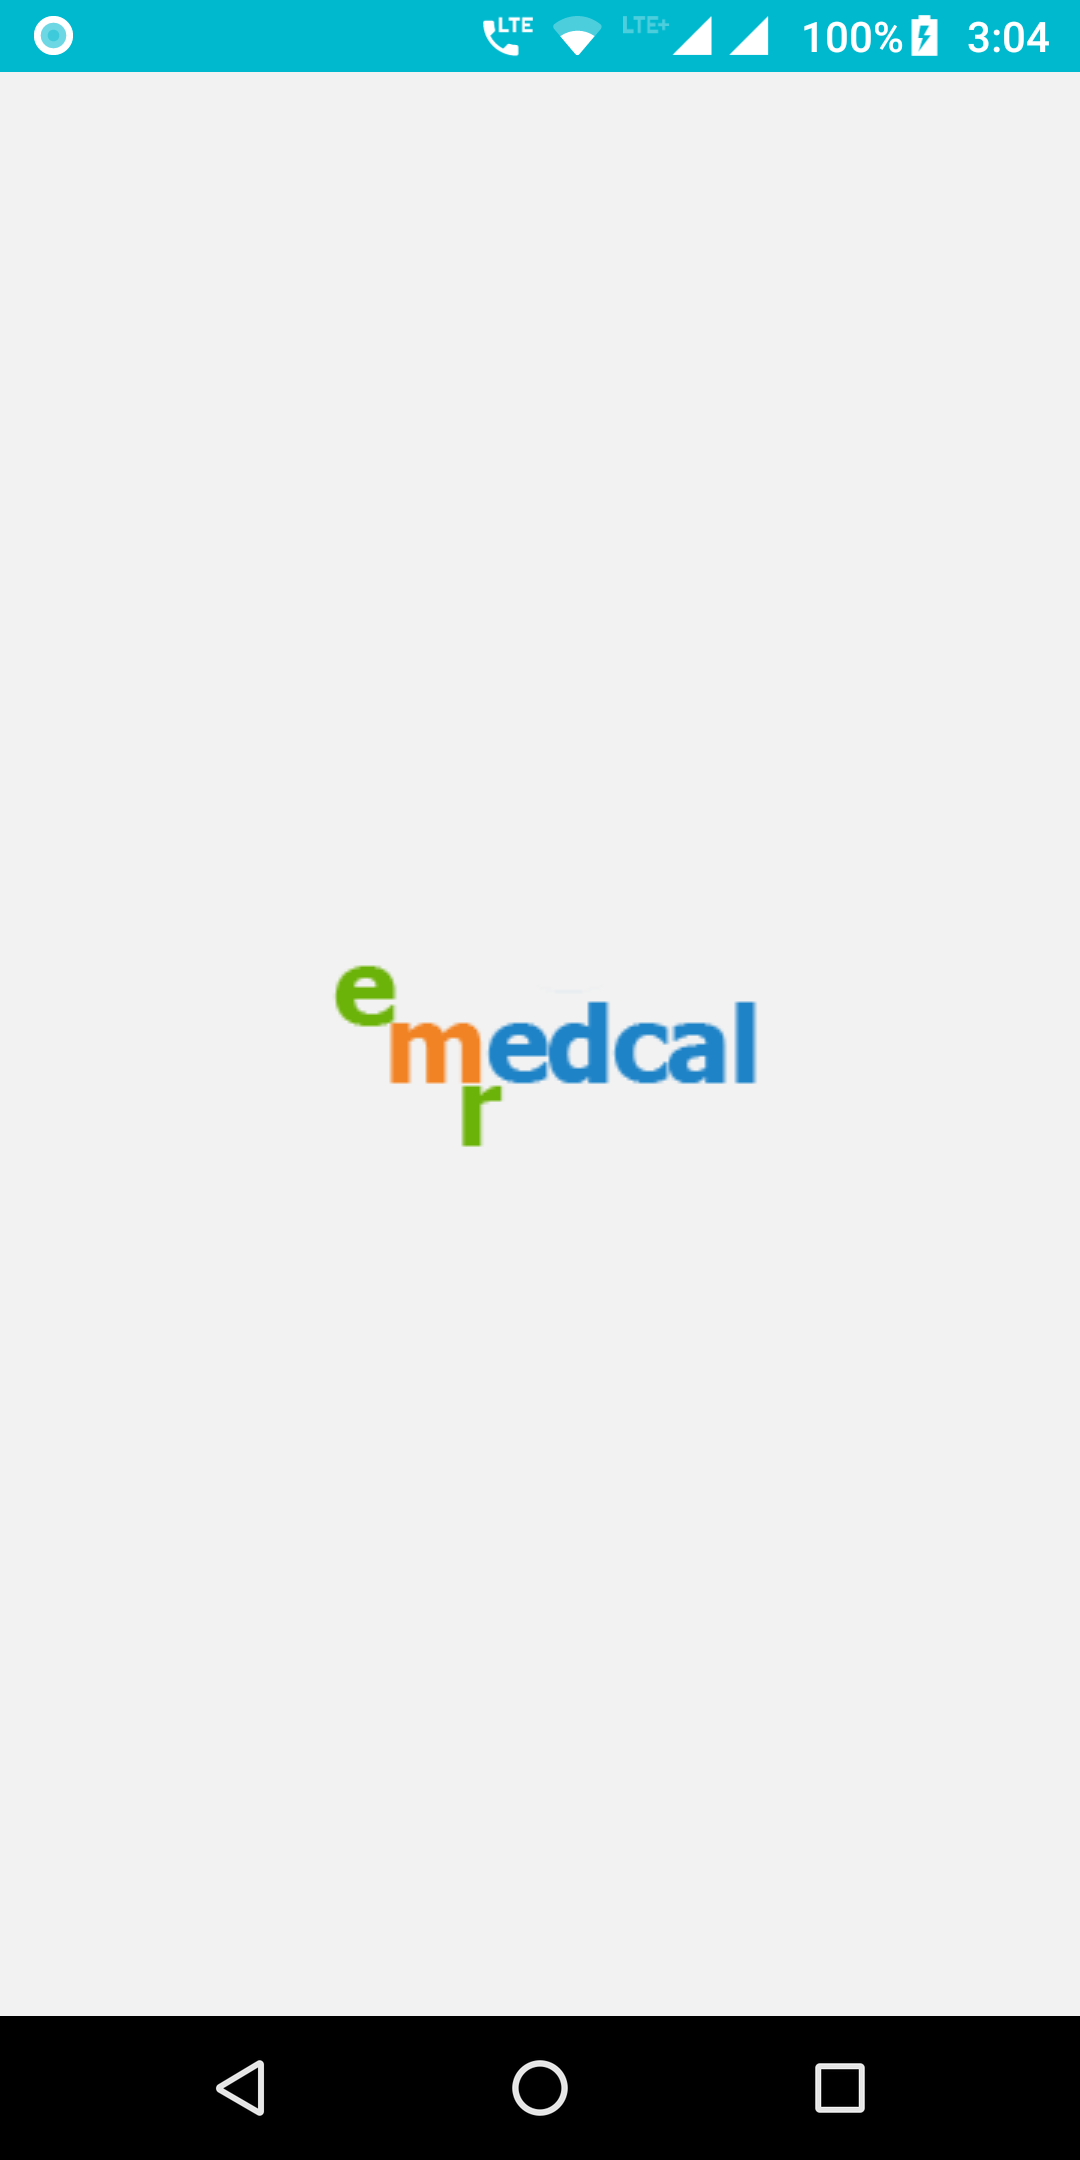 EMR ( Electronic Medical Record)